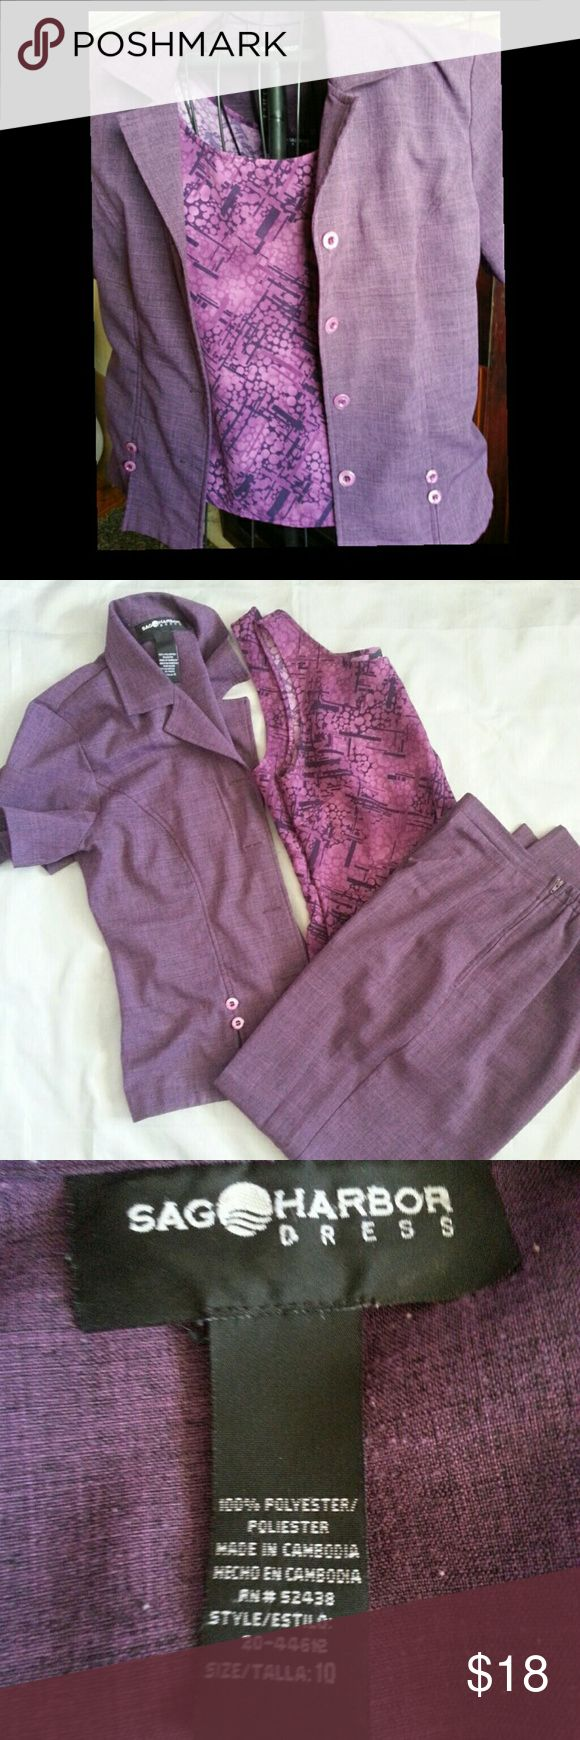 Sag Harbor pants suit Sag Harbor Women's two piece pantset. Purple in color. The pants are size 10 and they zip up the side. Elastic in the back waistband. The jacket is button front and is short sleeve. Comes with camisole jacket and pants. GUC no snags stains tears pulls or fading Sag Harbor Pants Trousers